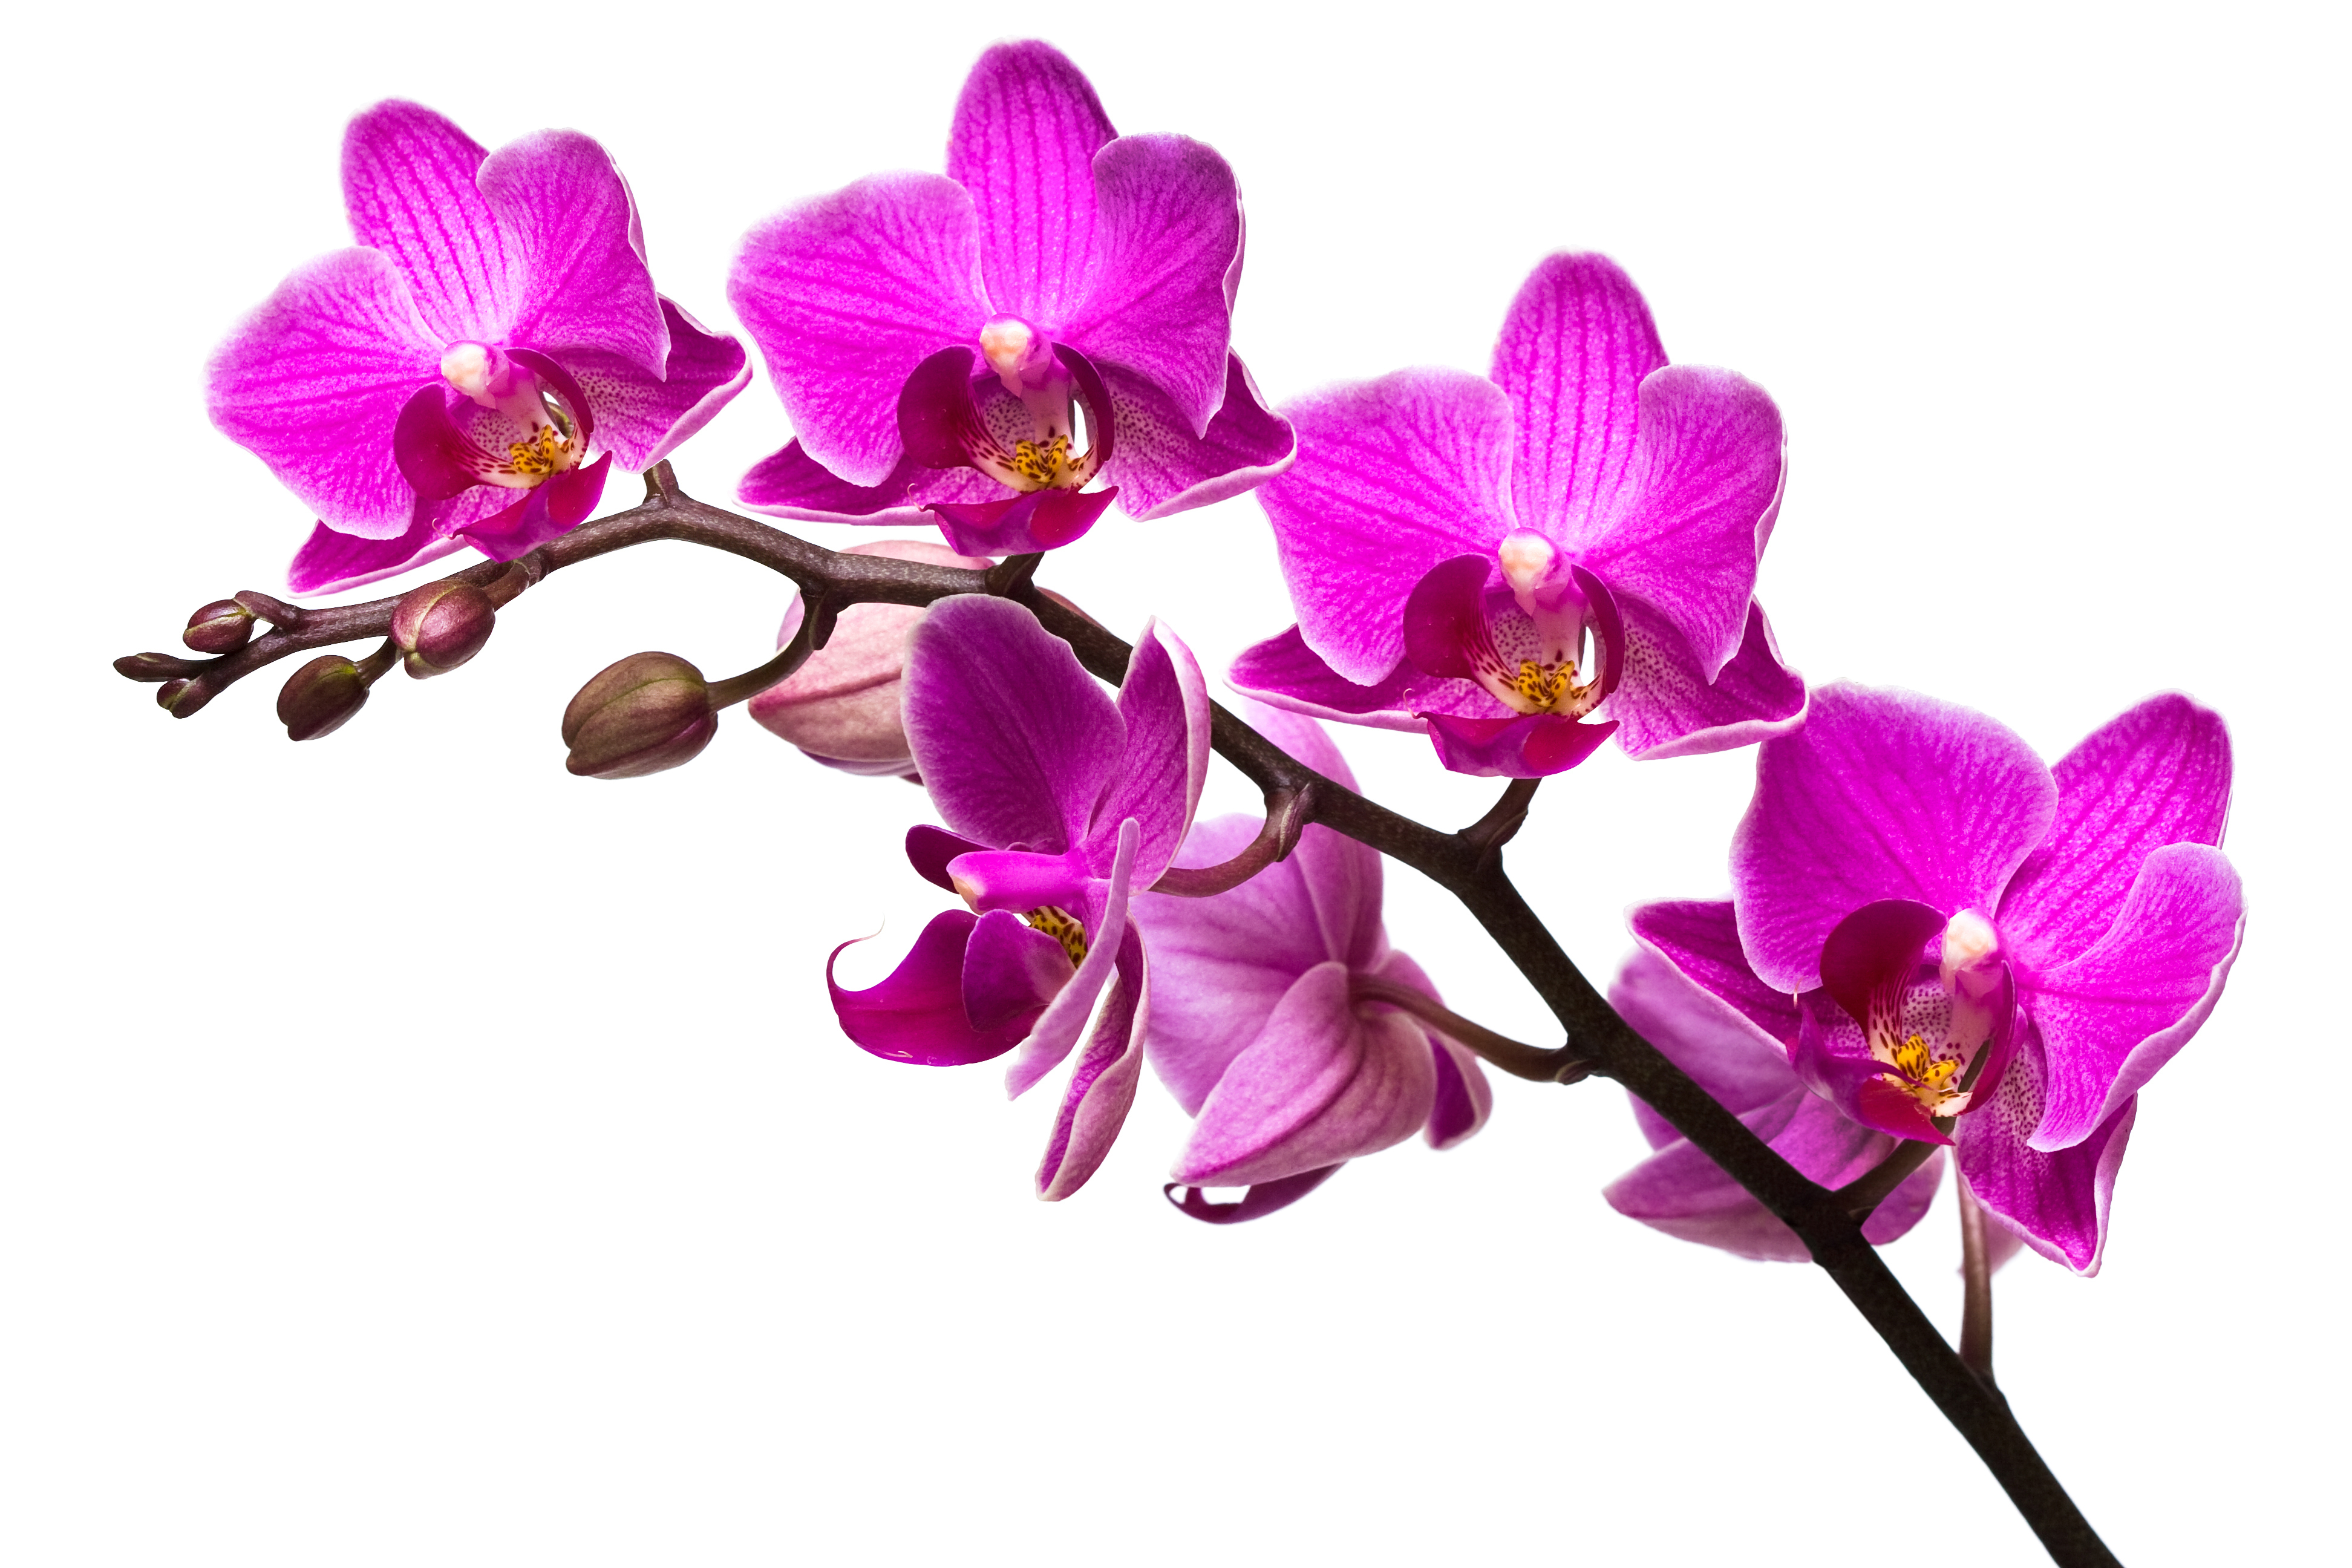 Orchid Dream Imagery by An Wurm, 69BZQZ